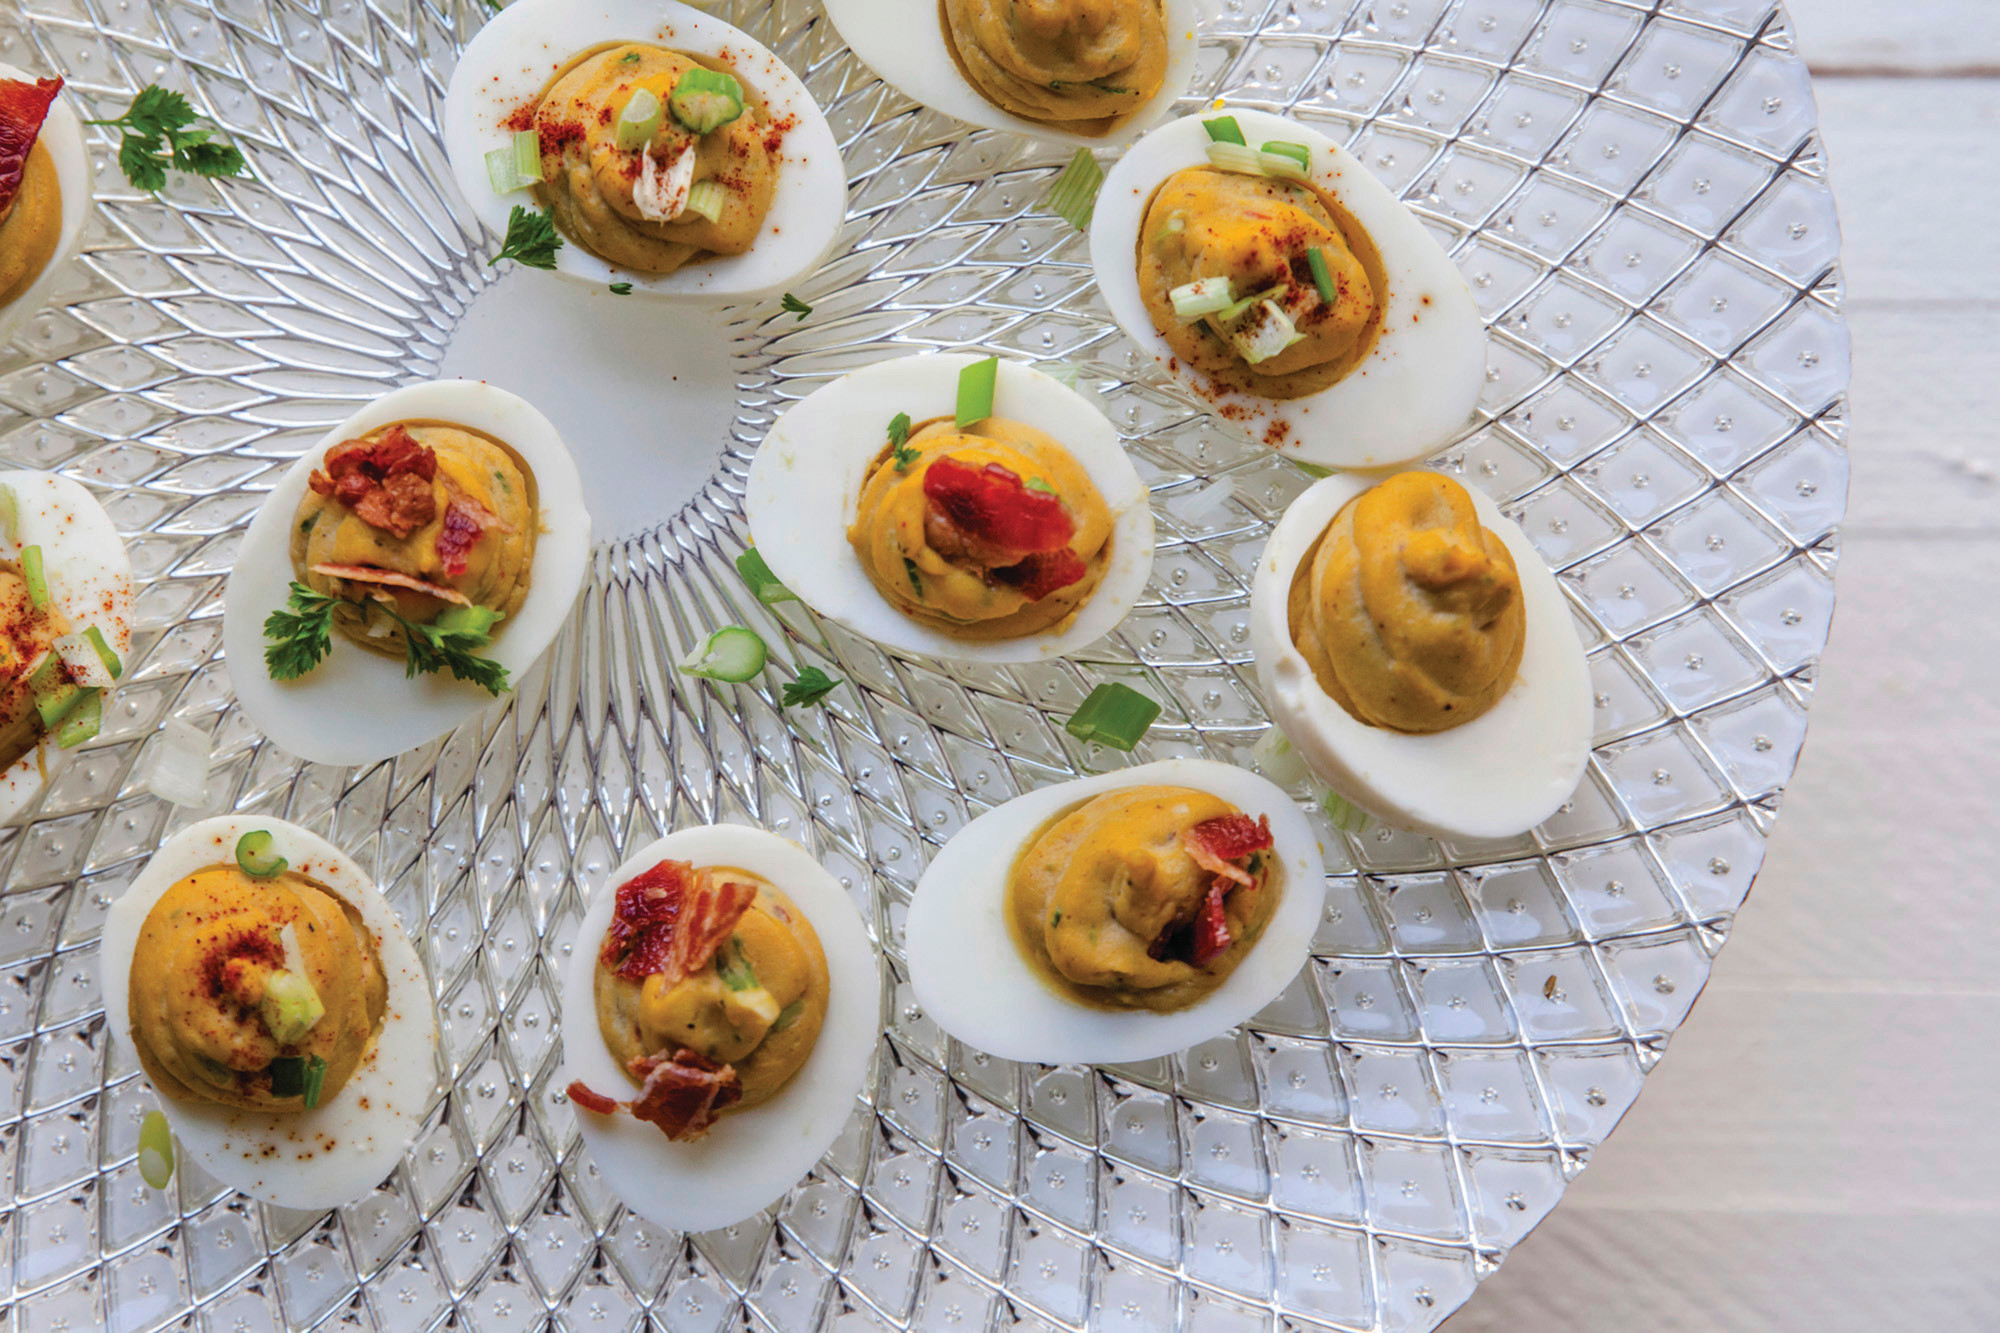 This December 2017 photo shows deviled eggs in New York. This dish is from a recipe by Katie Workman.